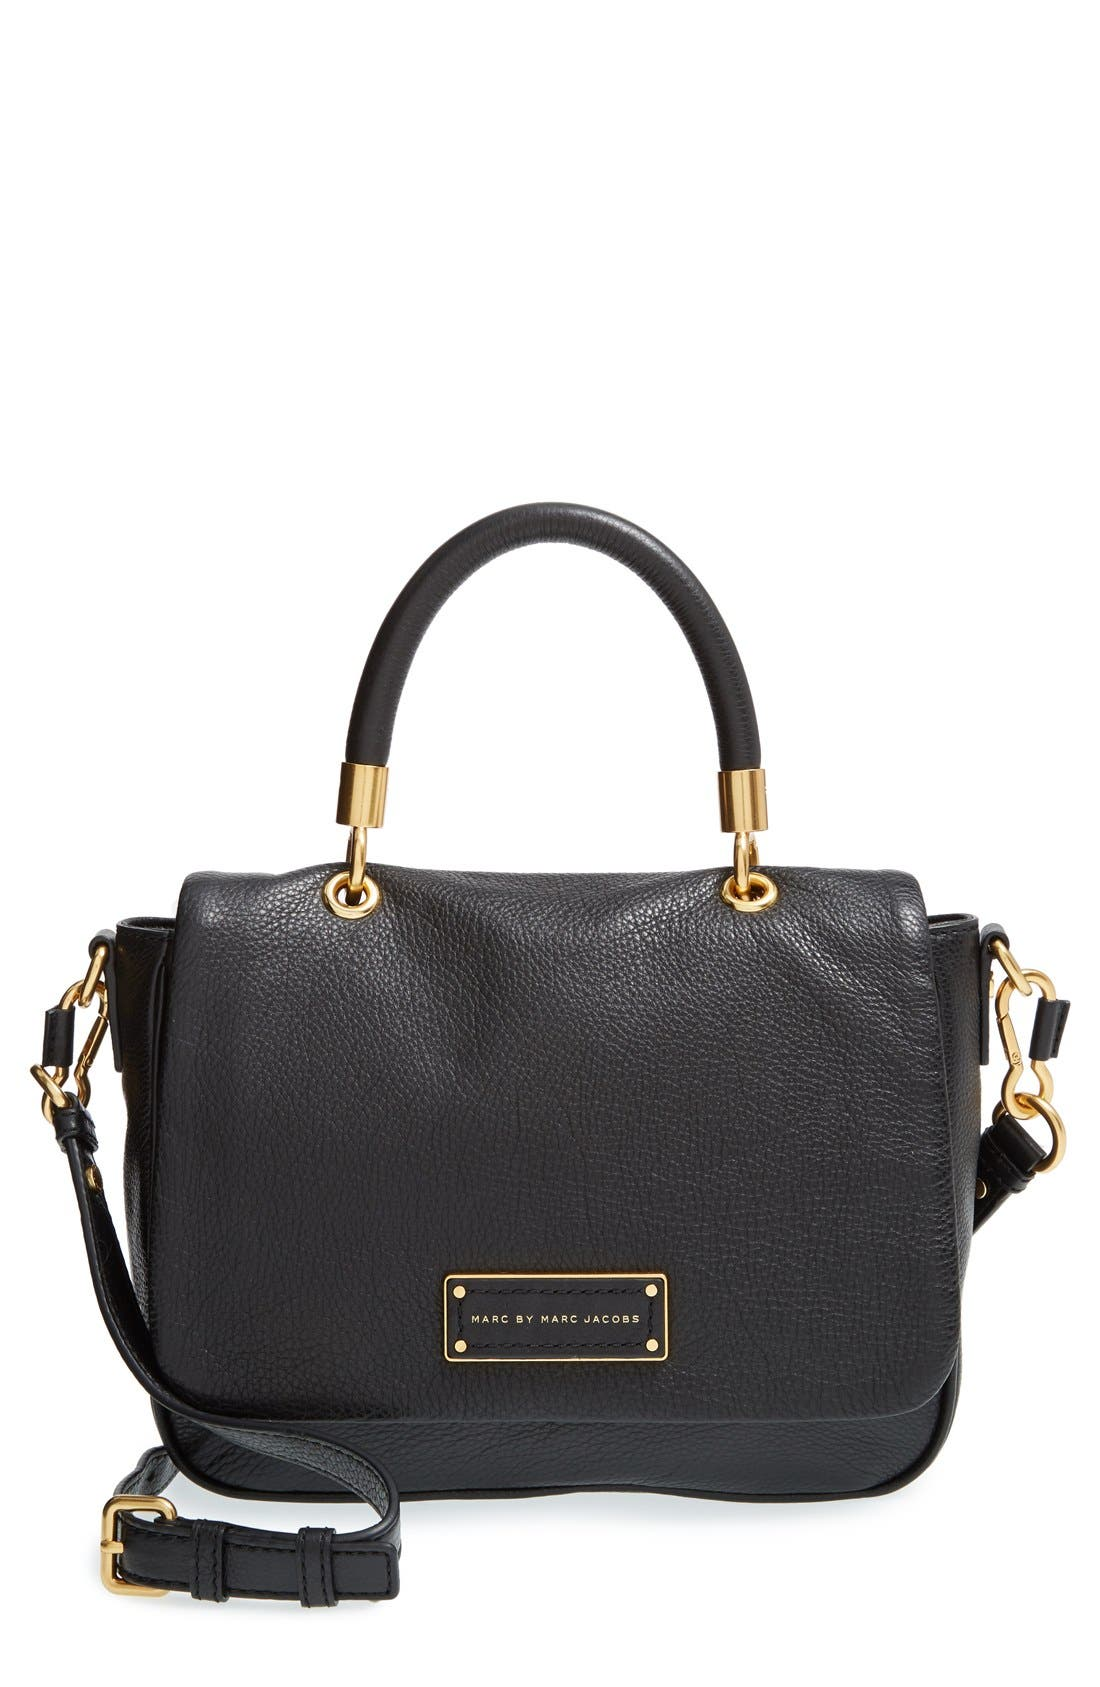 MARC JACOBS,                             MARC BY MARC JACOBS 'Small Too Hot To Handle' Leather Tote,                             Main thumbnail 1, color,                             001